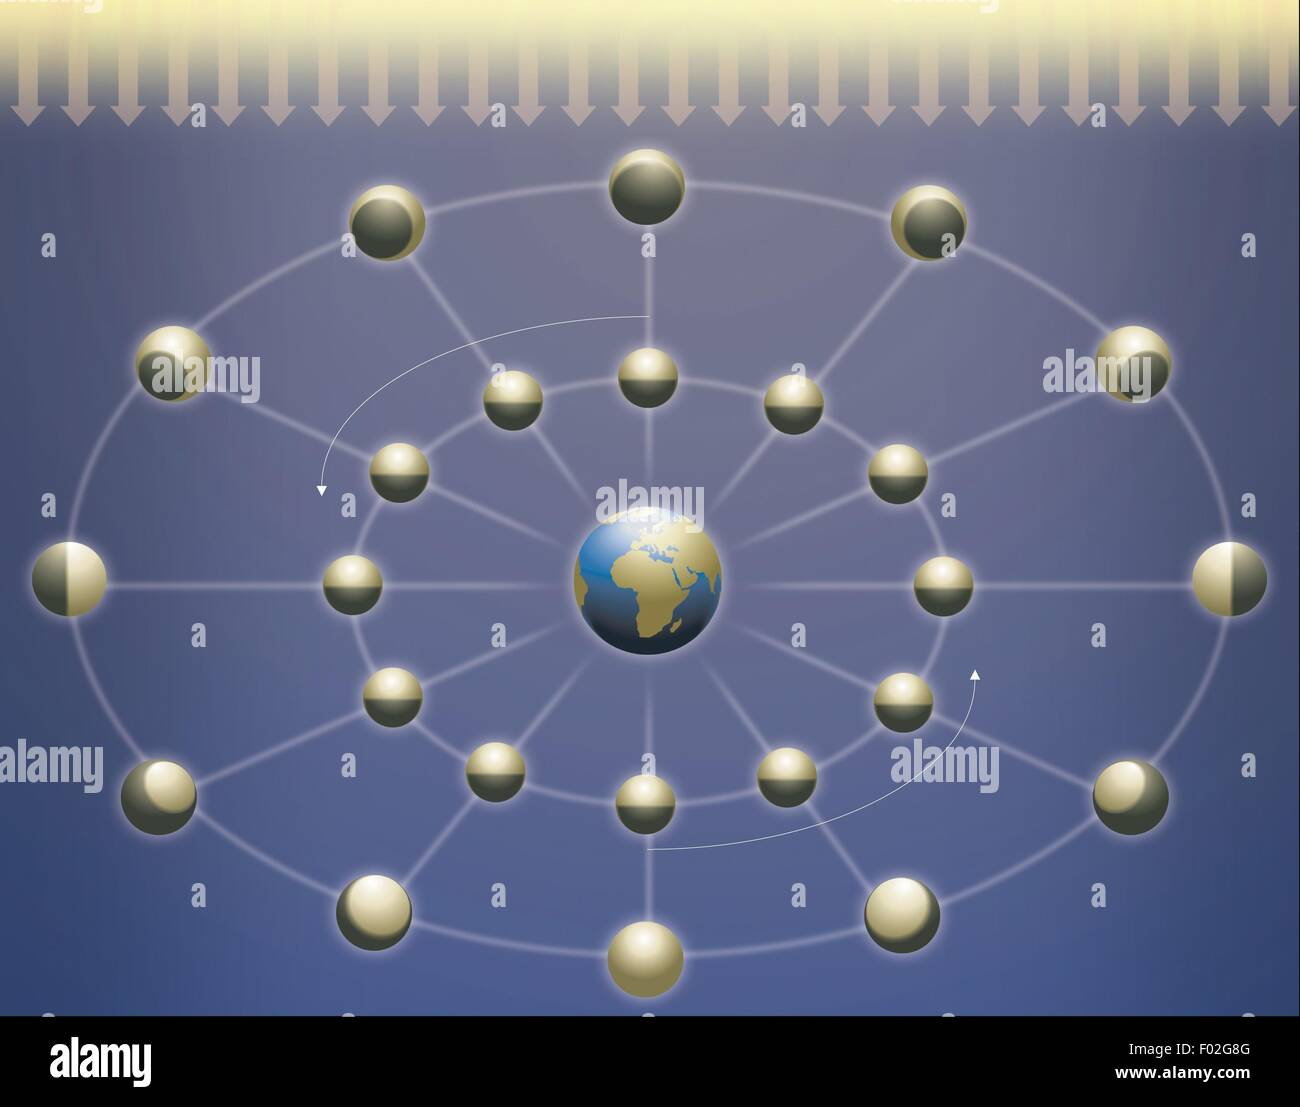 Color Moon Phases Diagram Wiring Diagrams Phase Printable Chart Astronomy Lunar Stock Photo 86108528 Rh Alamy Com Blank